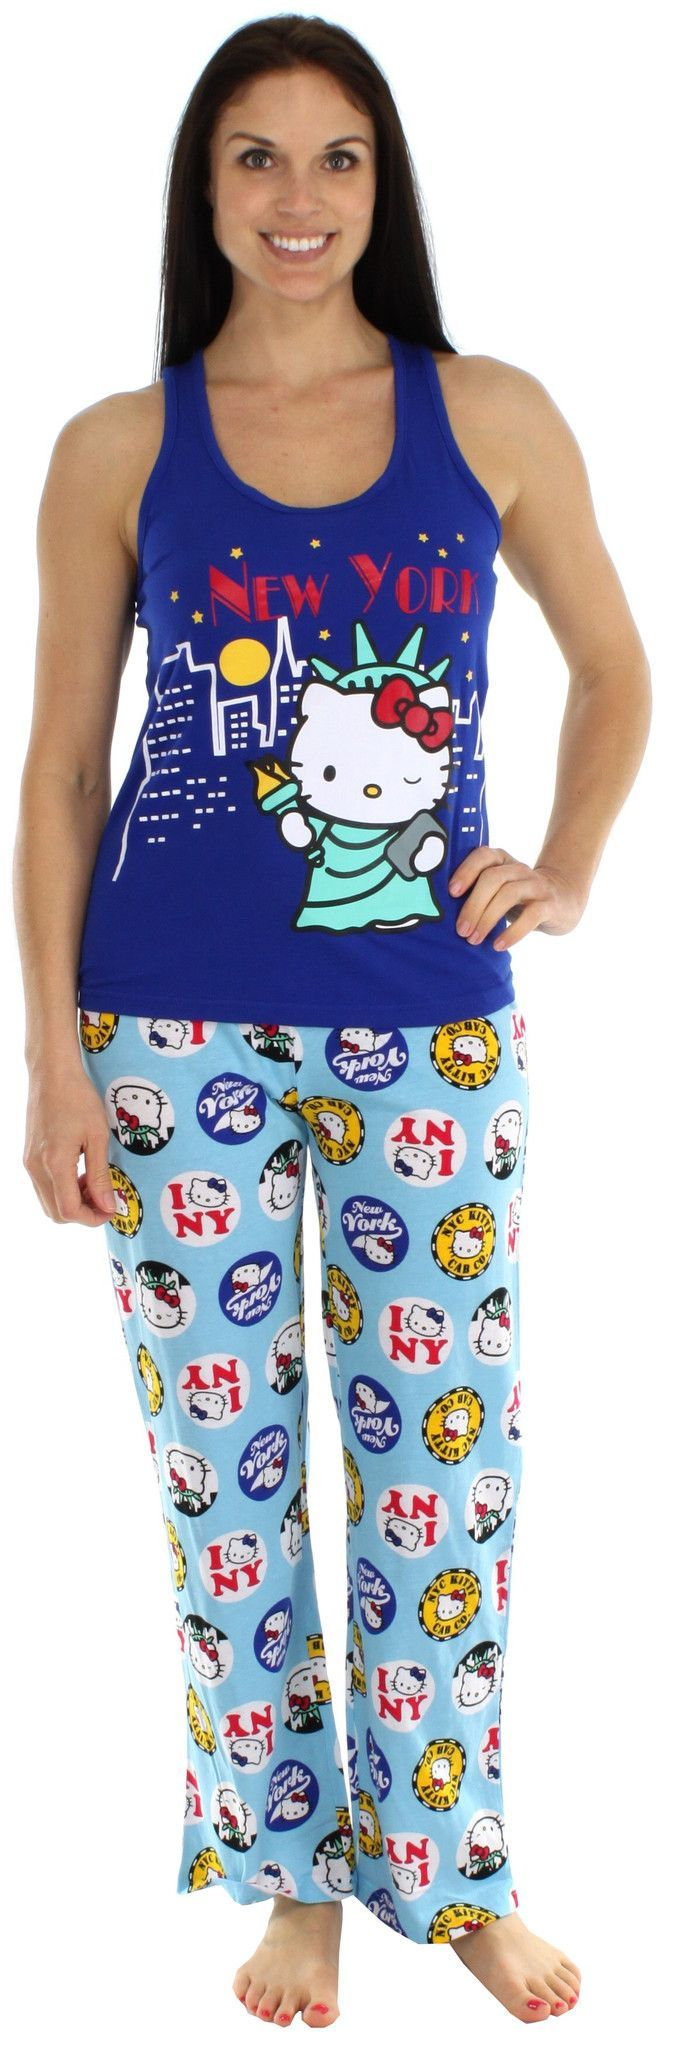 This Hello Kitty tank pajama set is a fun and flirty way to begin the Spring and Summer months. The top is 60% Cotton 40% Polyester and the pant is 100% Cotton. The racerback tank top features a place